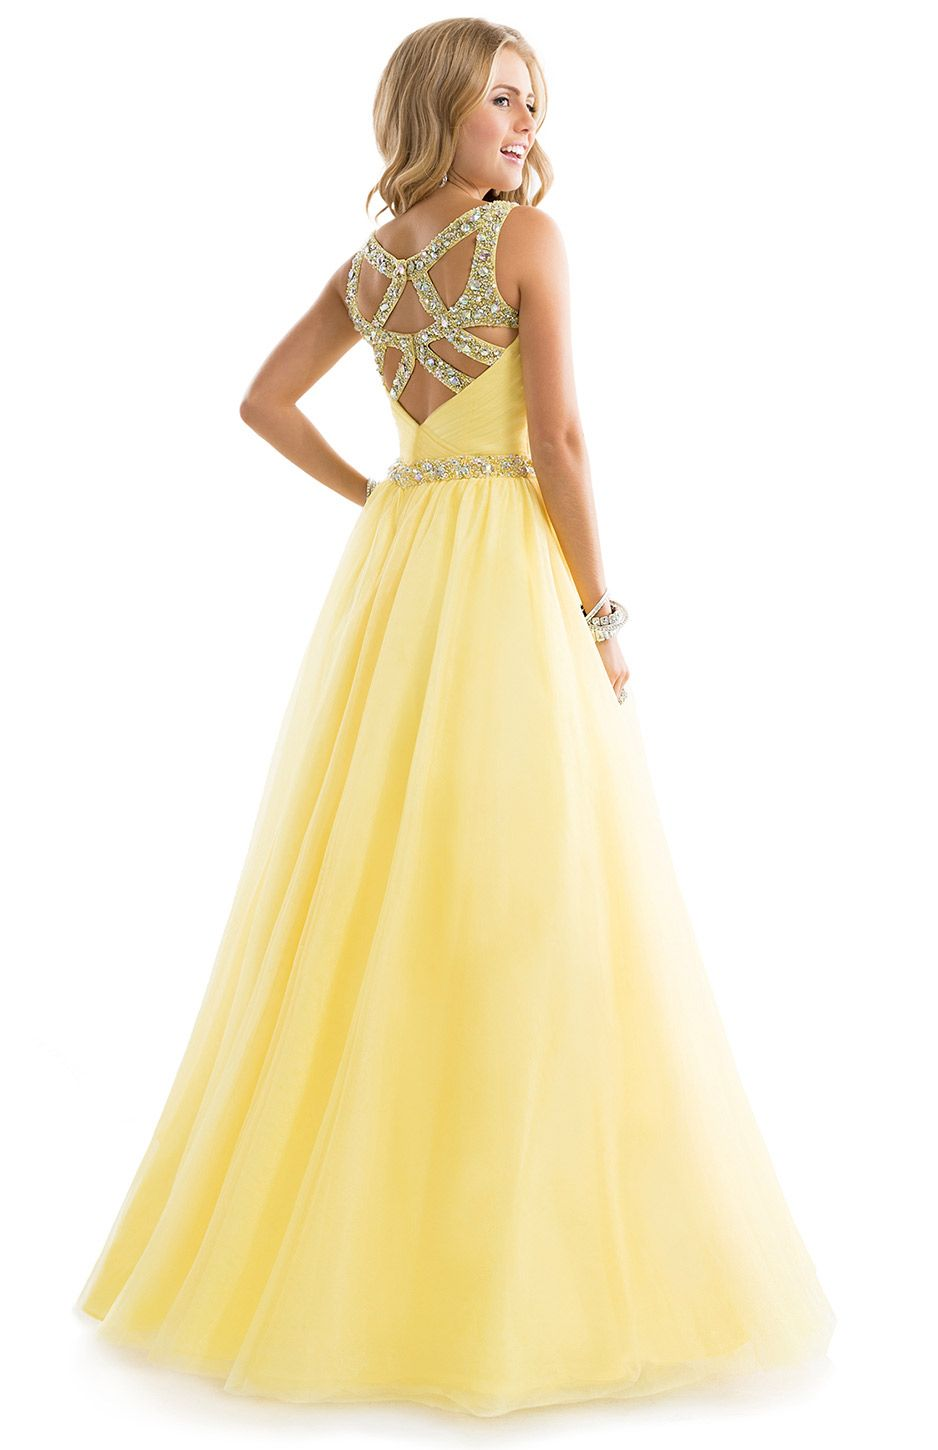 Ball gown dress with ruched tulle by flirt dresses